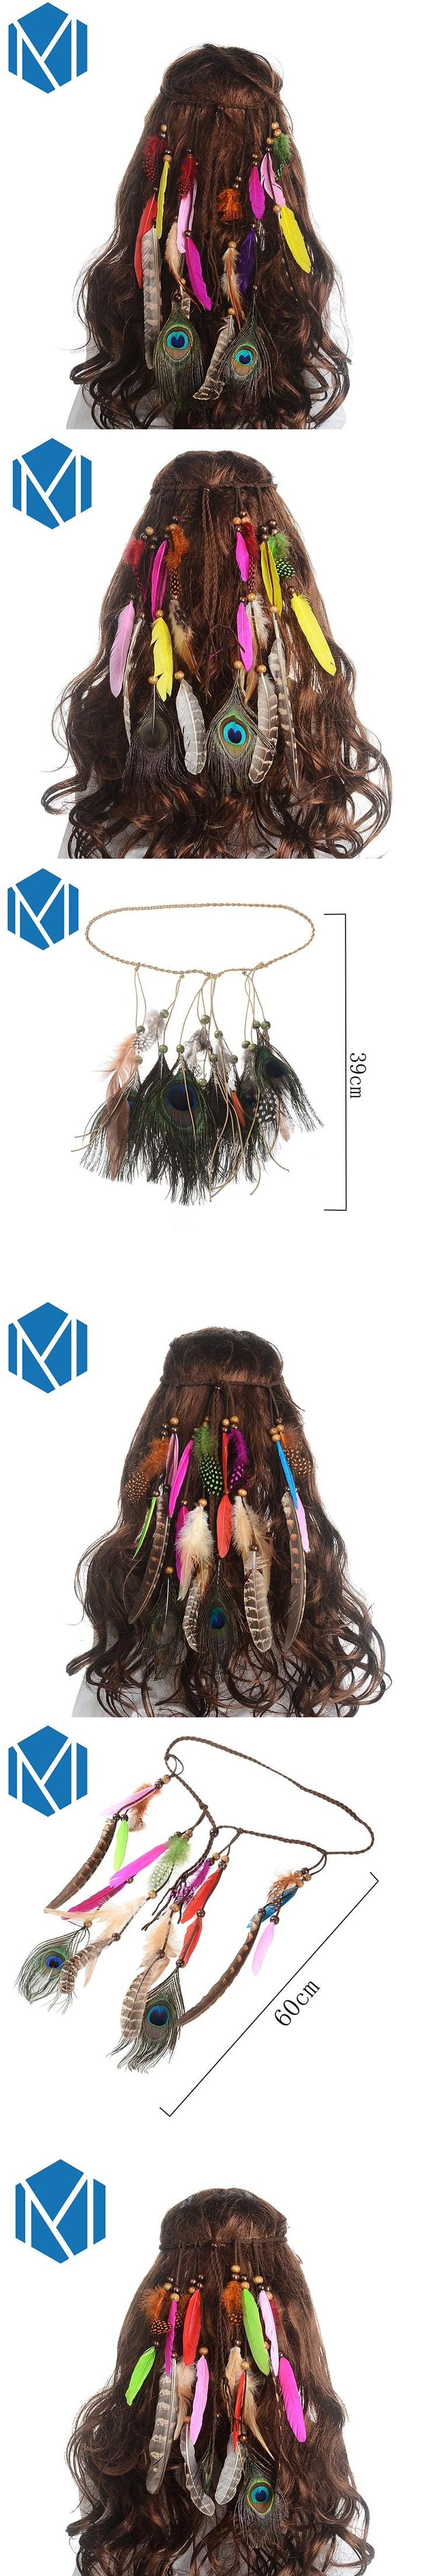 M MISM Girls Colorful Feather Headband 2017 New Festival Hippie Hair Band Accessories for Women Boho Styling Peacock Headdress